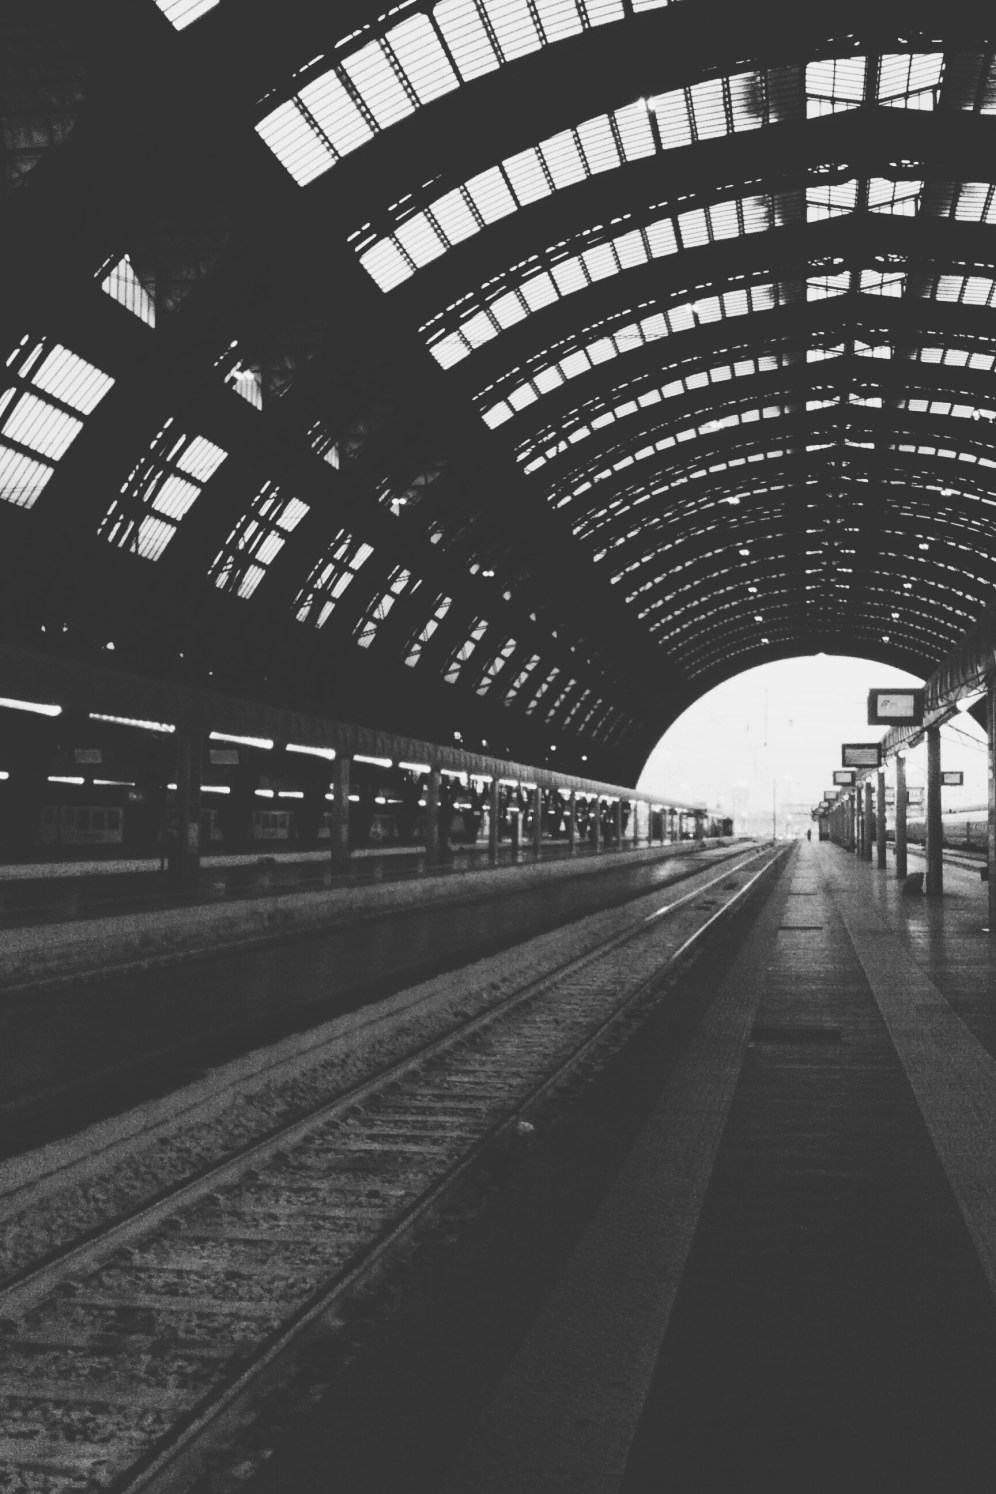 Milan: Some B&W thoughts (1)